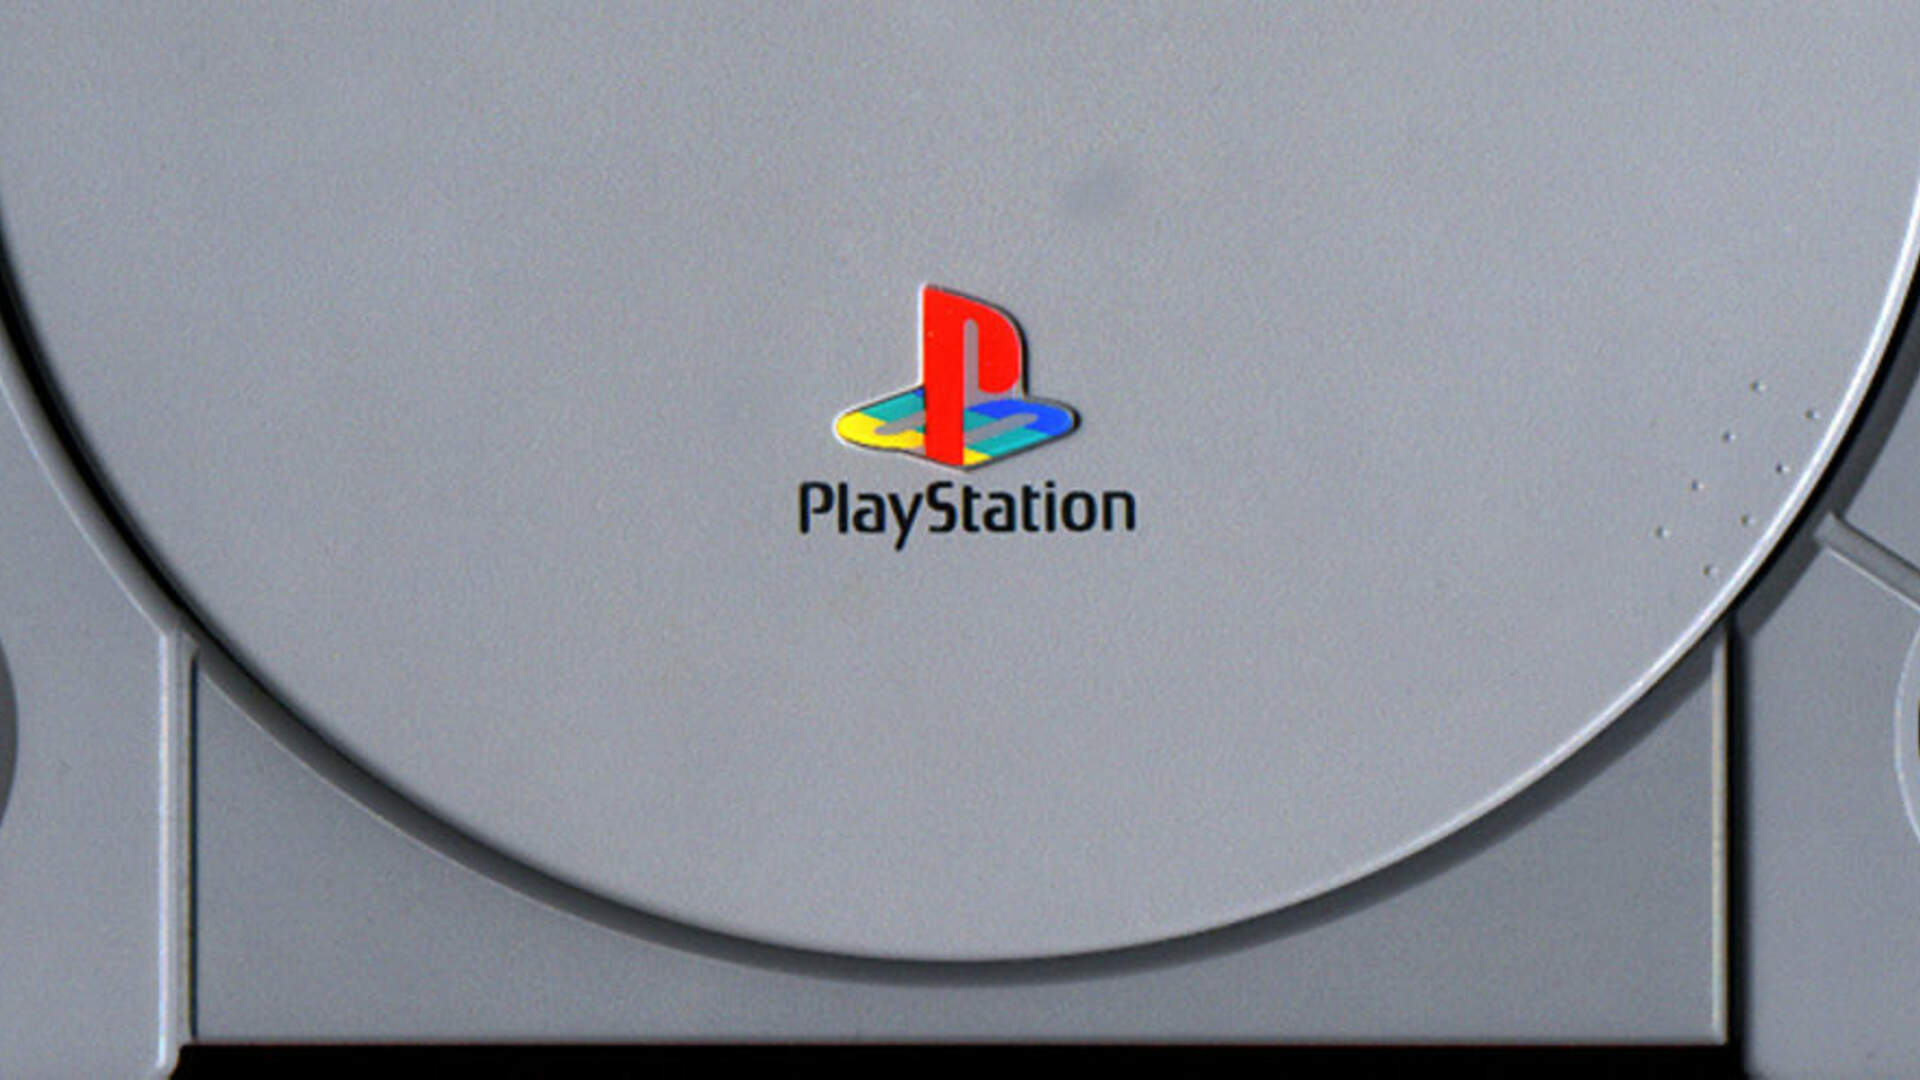 Why the Contribution Retro Consoles Like PlayStation Classic Make to Video Game History Are Questionable